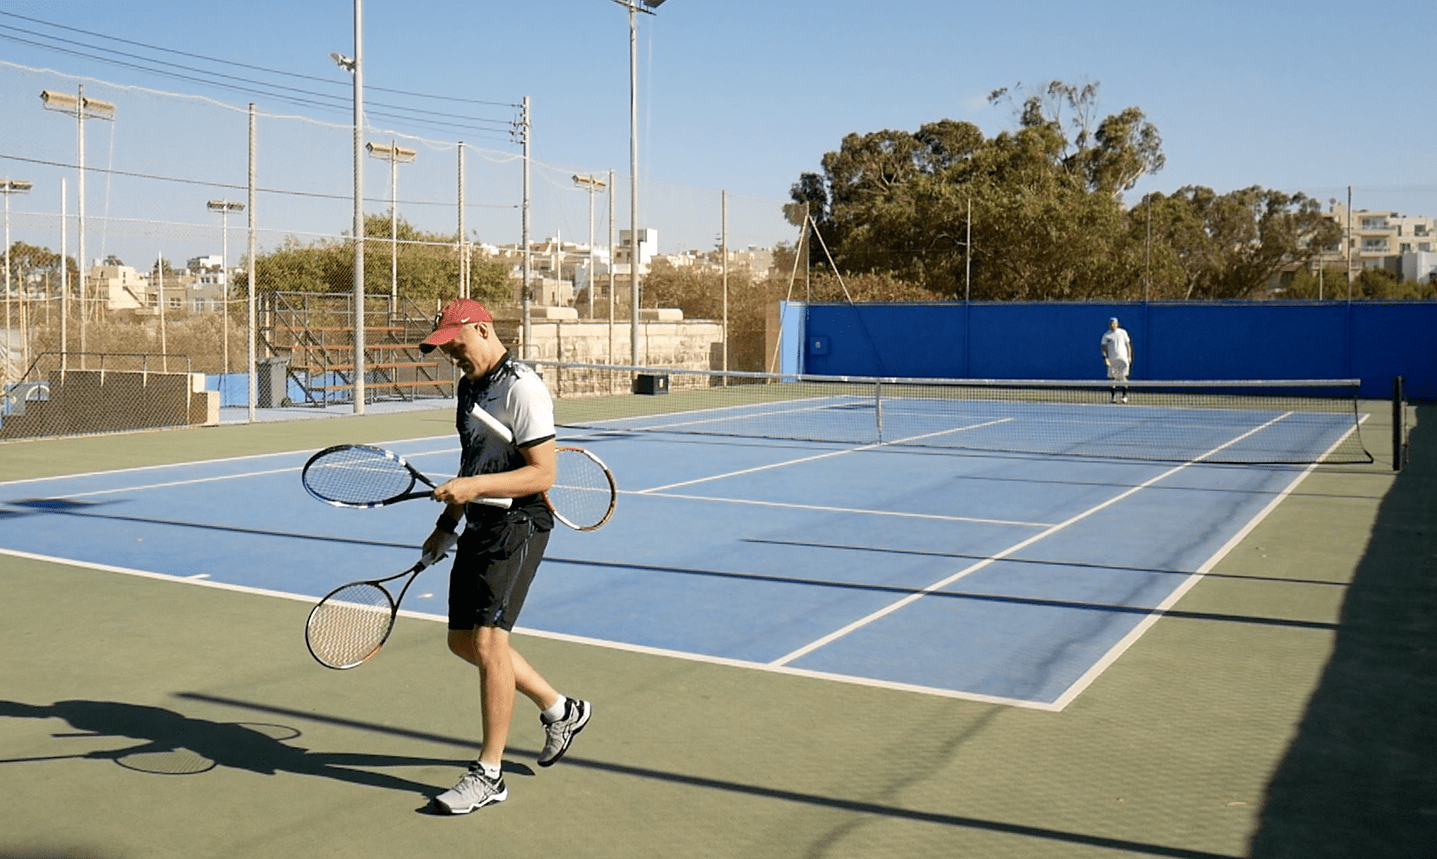 Tennisnerd thoughts - Racquet confusion